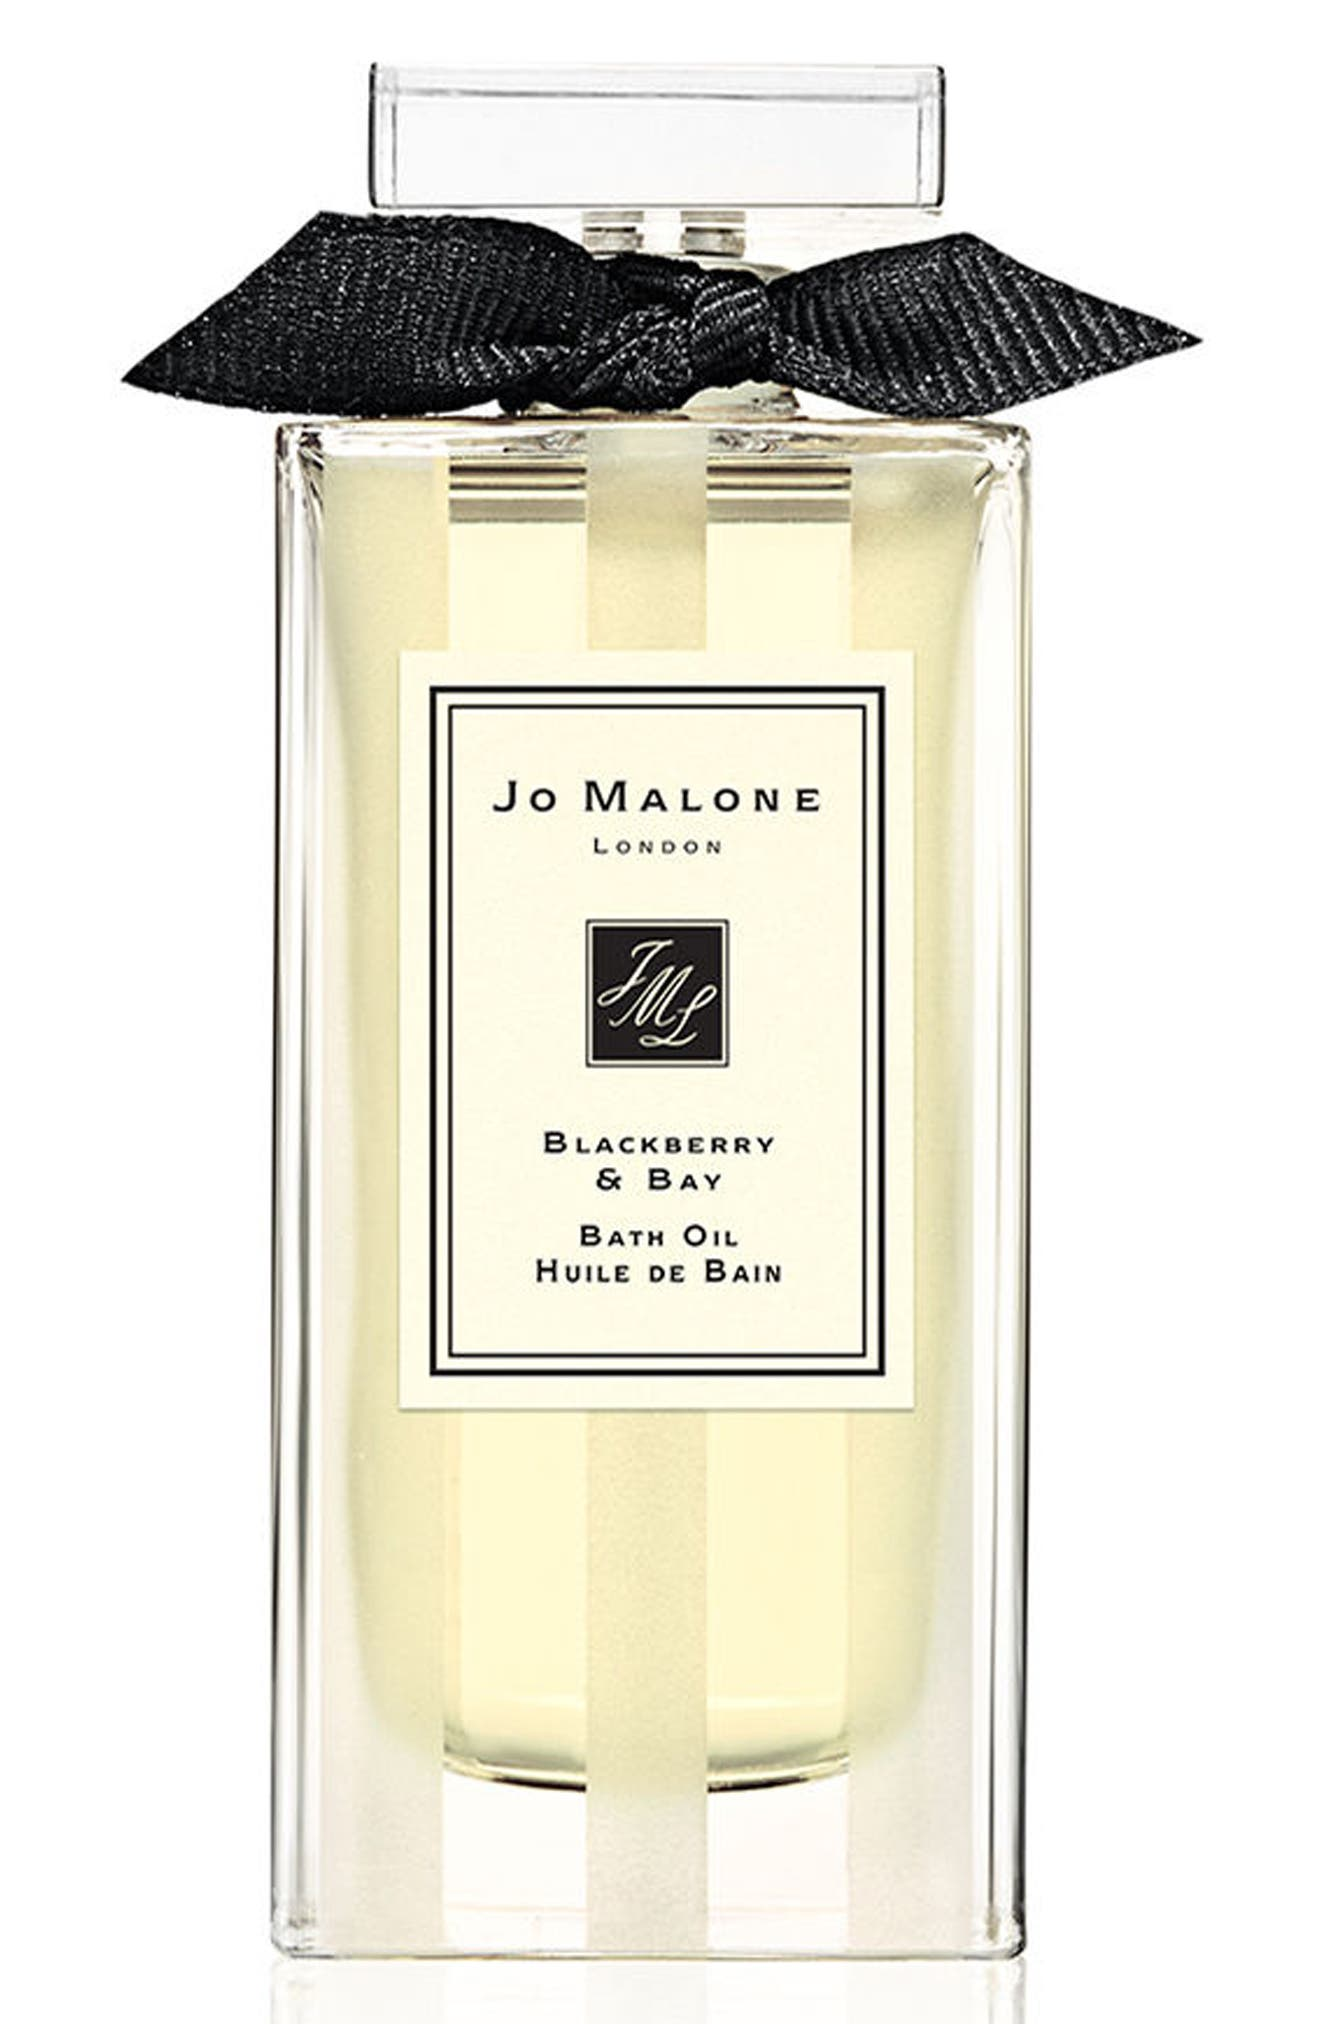 Jo Malone London™ 'Blackberry & Bay' Bath Oil